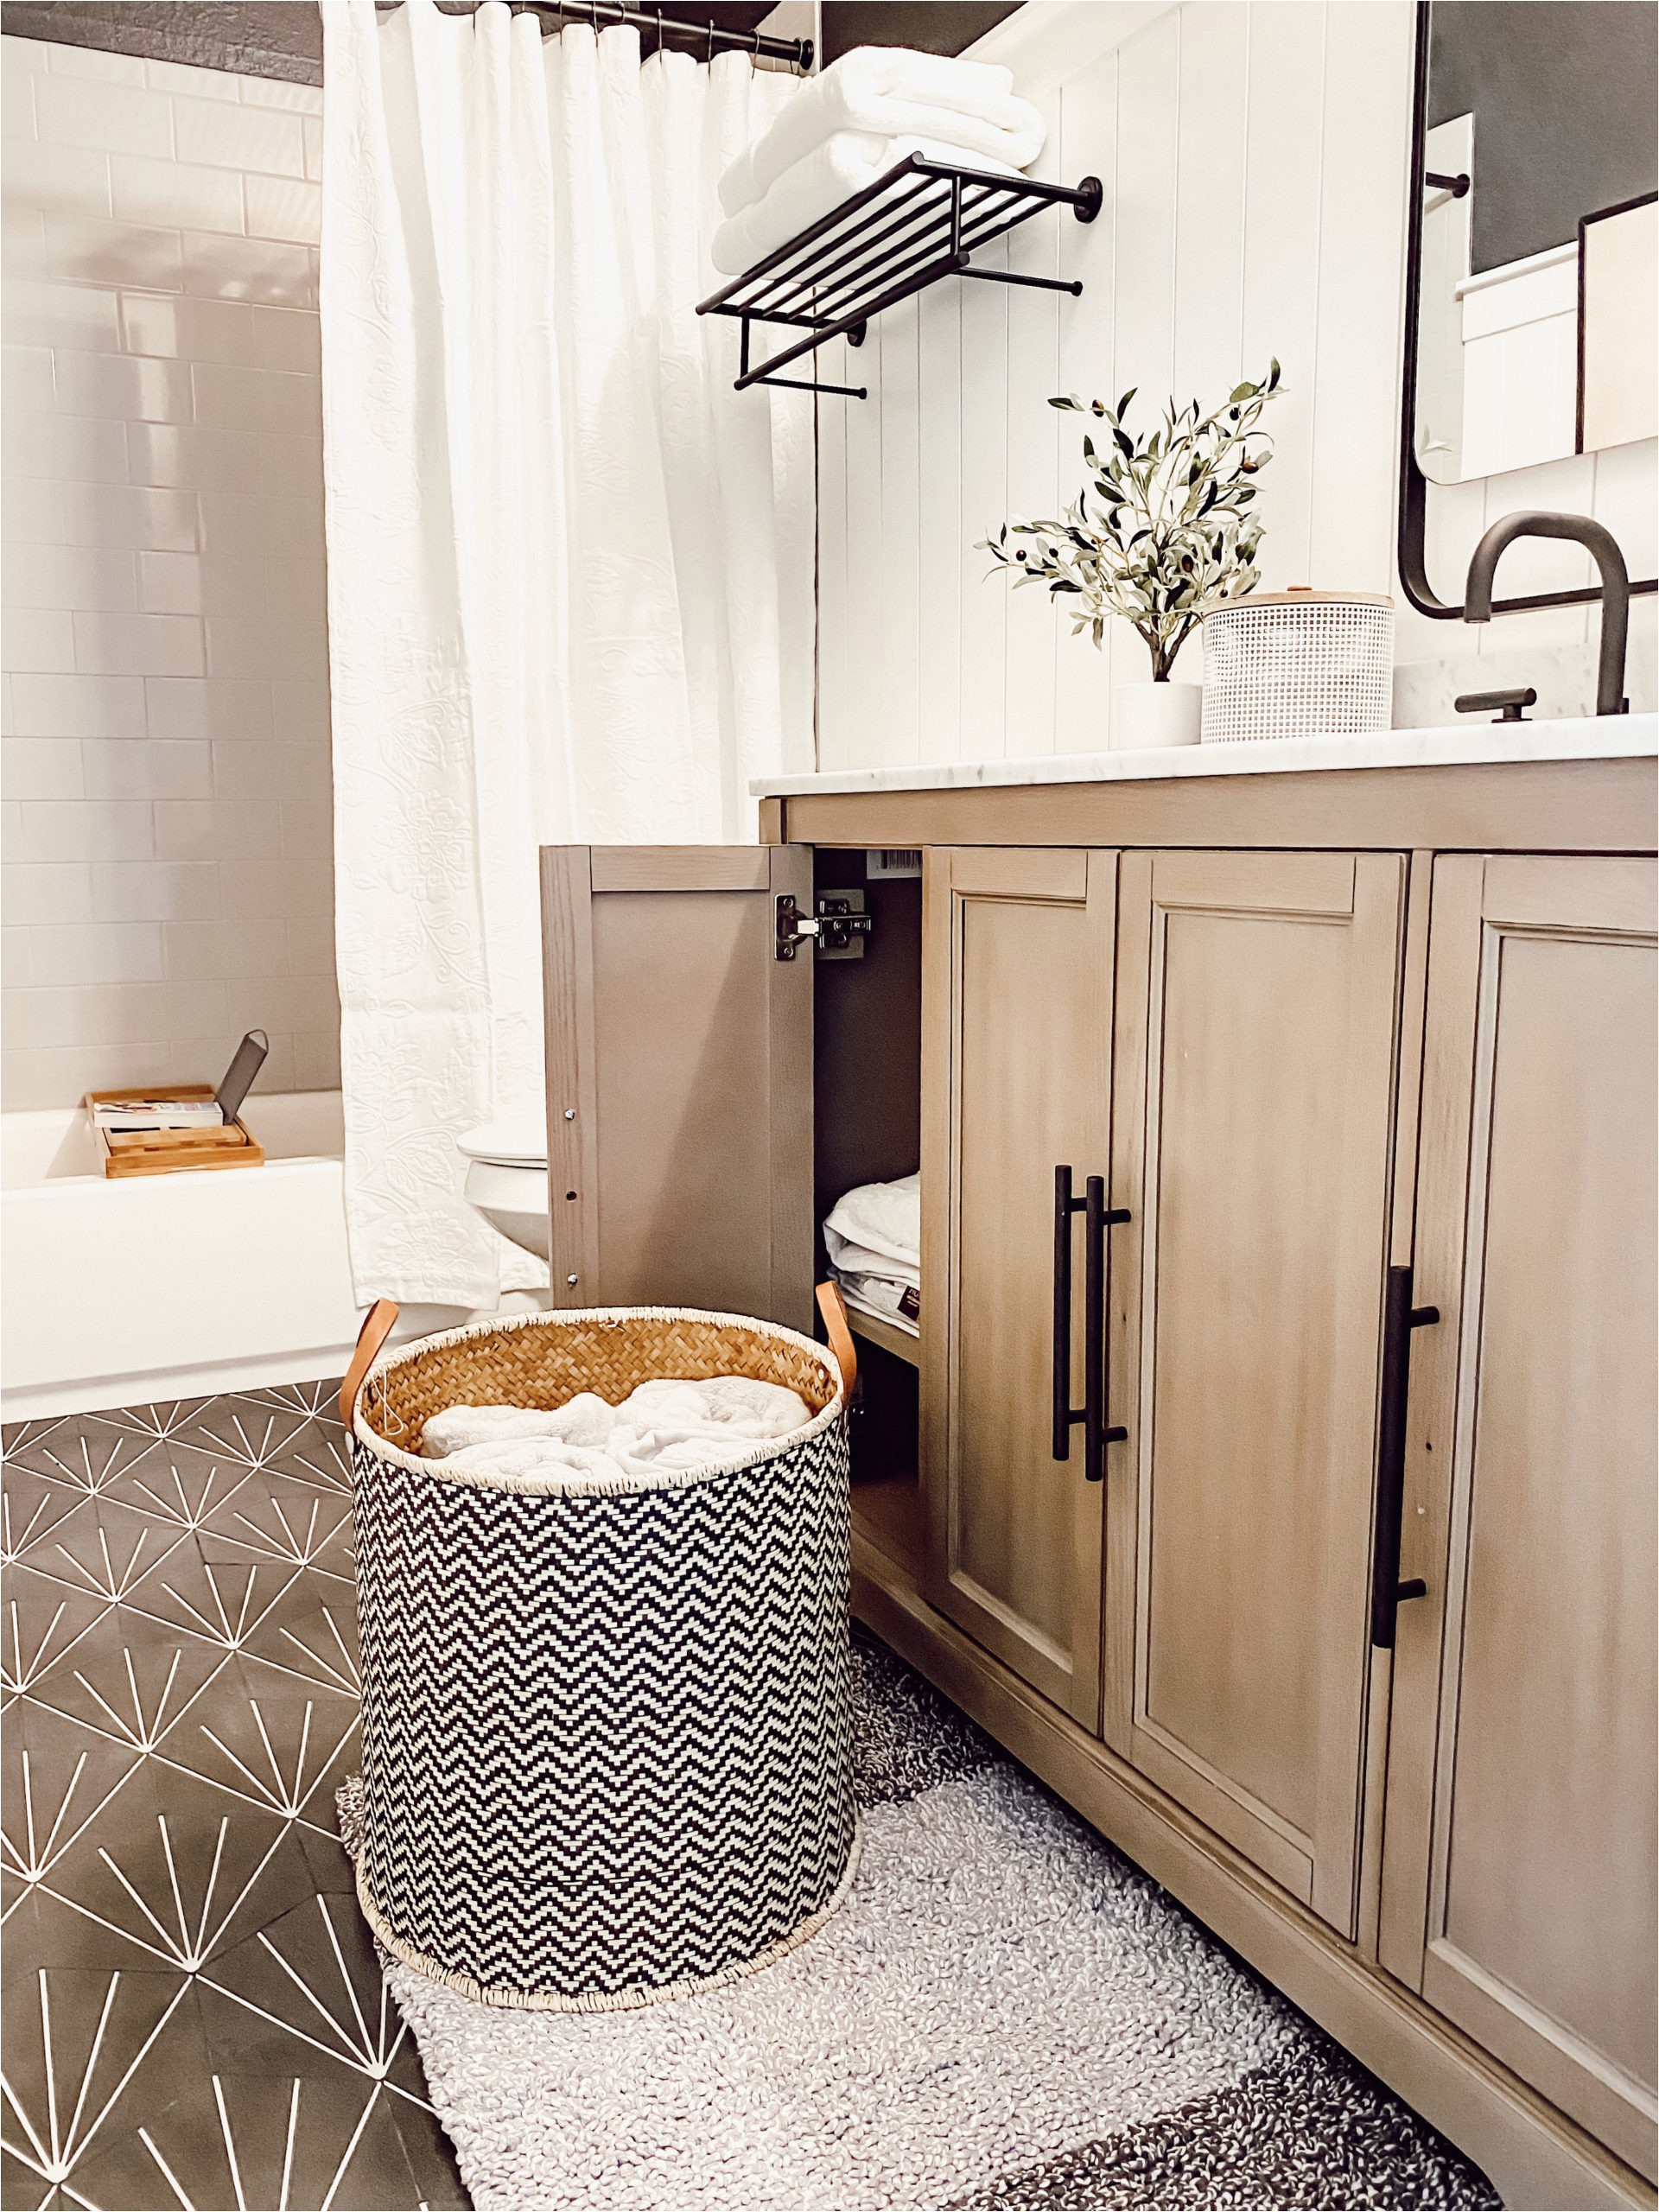 Bathroom Rugs Home Depot Bathroom Update with the Home Depot Ourfauxfarmhouse